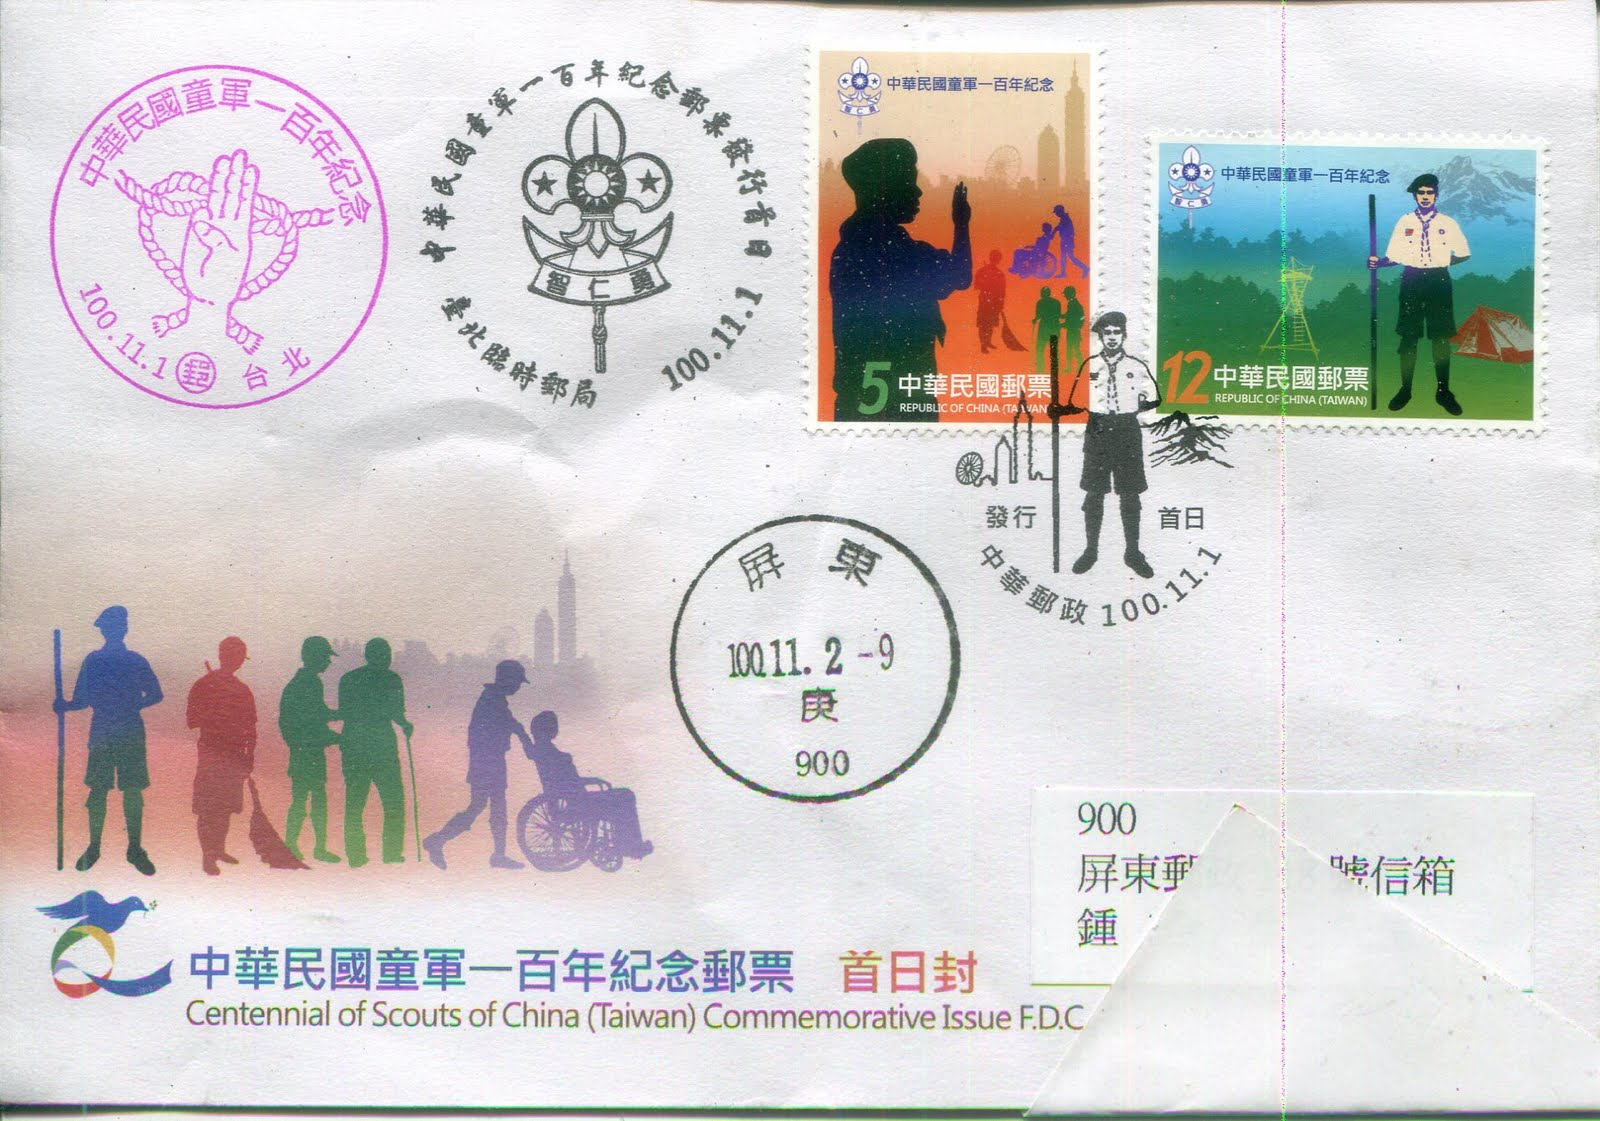 "Taiwan /ROC FDC: 2011-11-1 Issued ""Centenial of Scouts of ROC (Taiwan) ..."